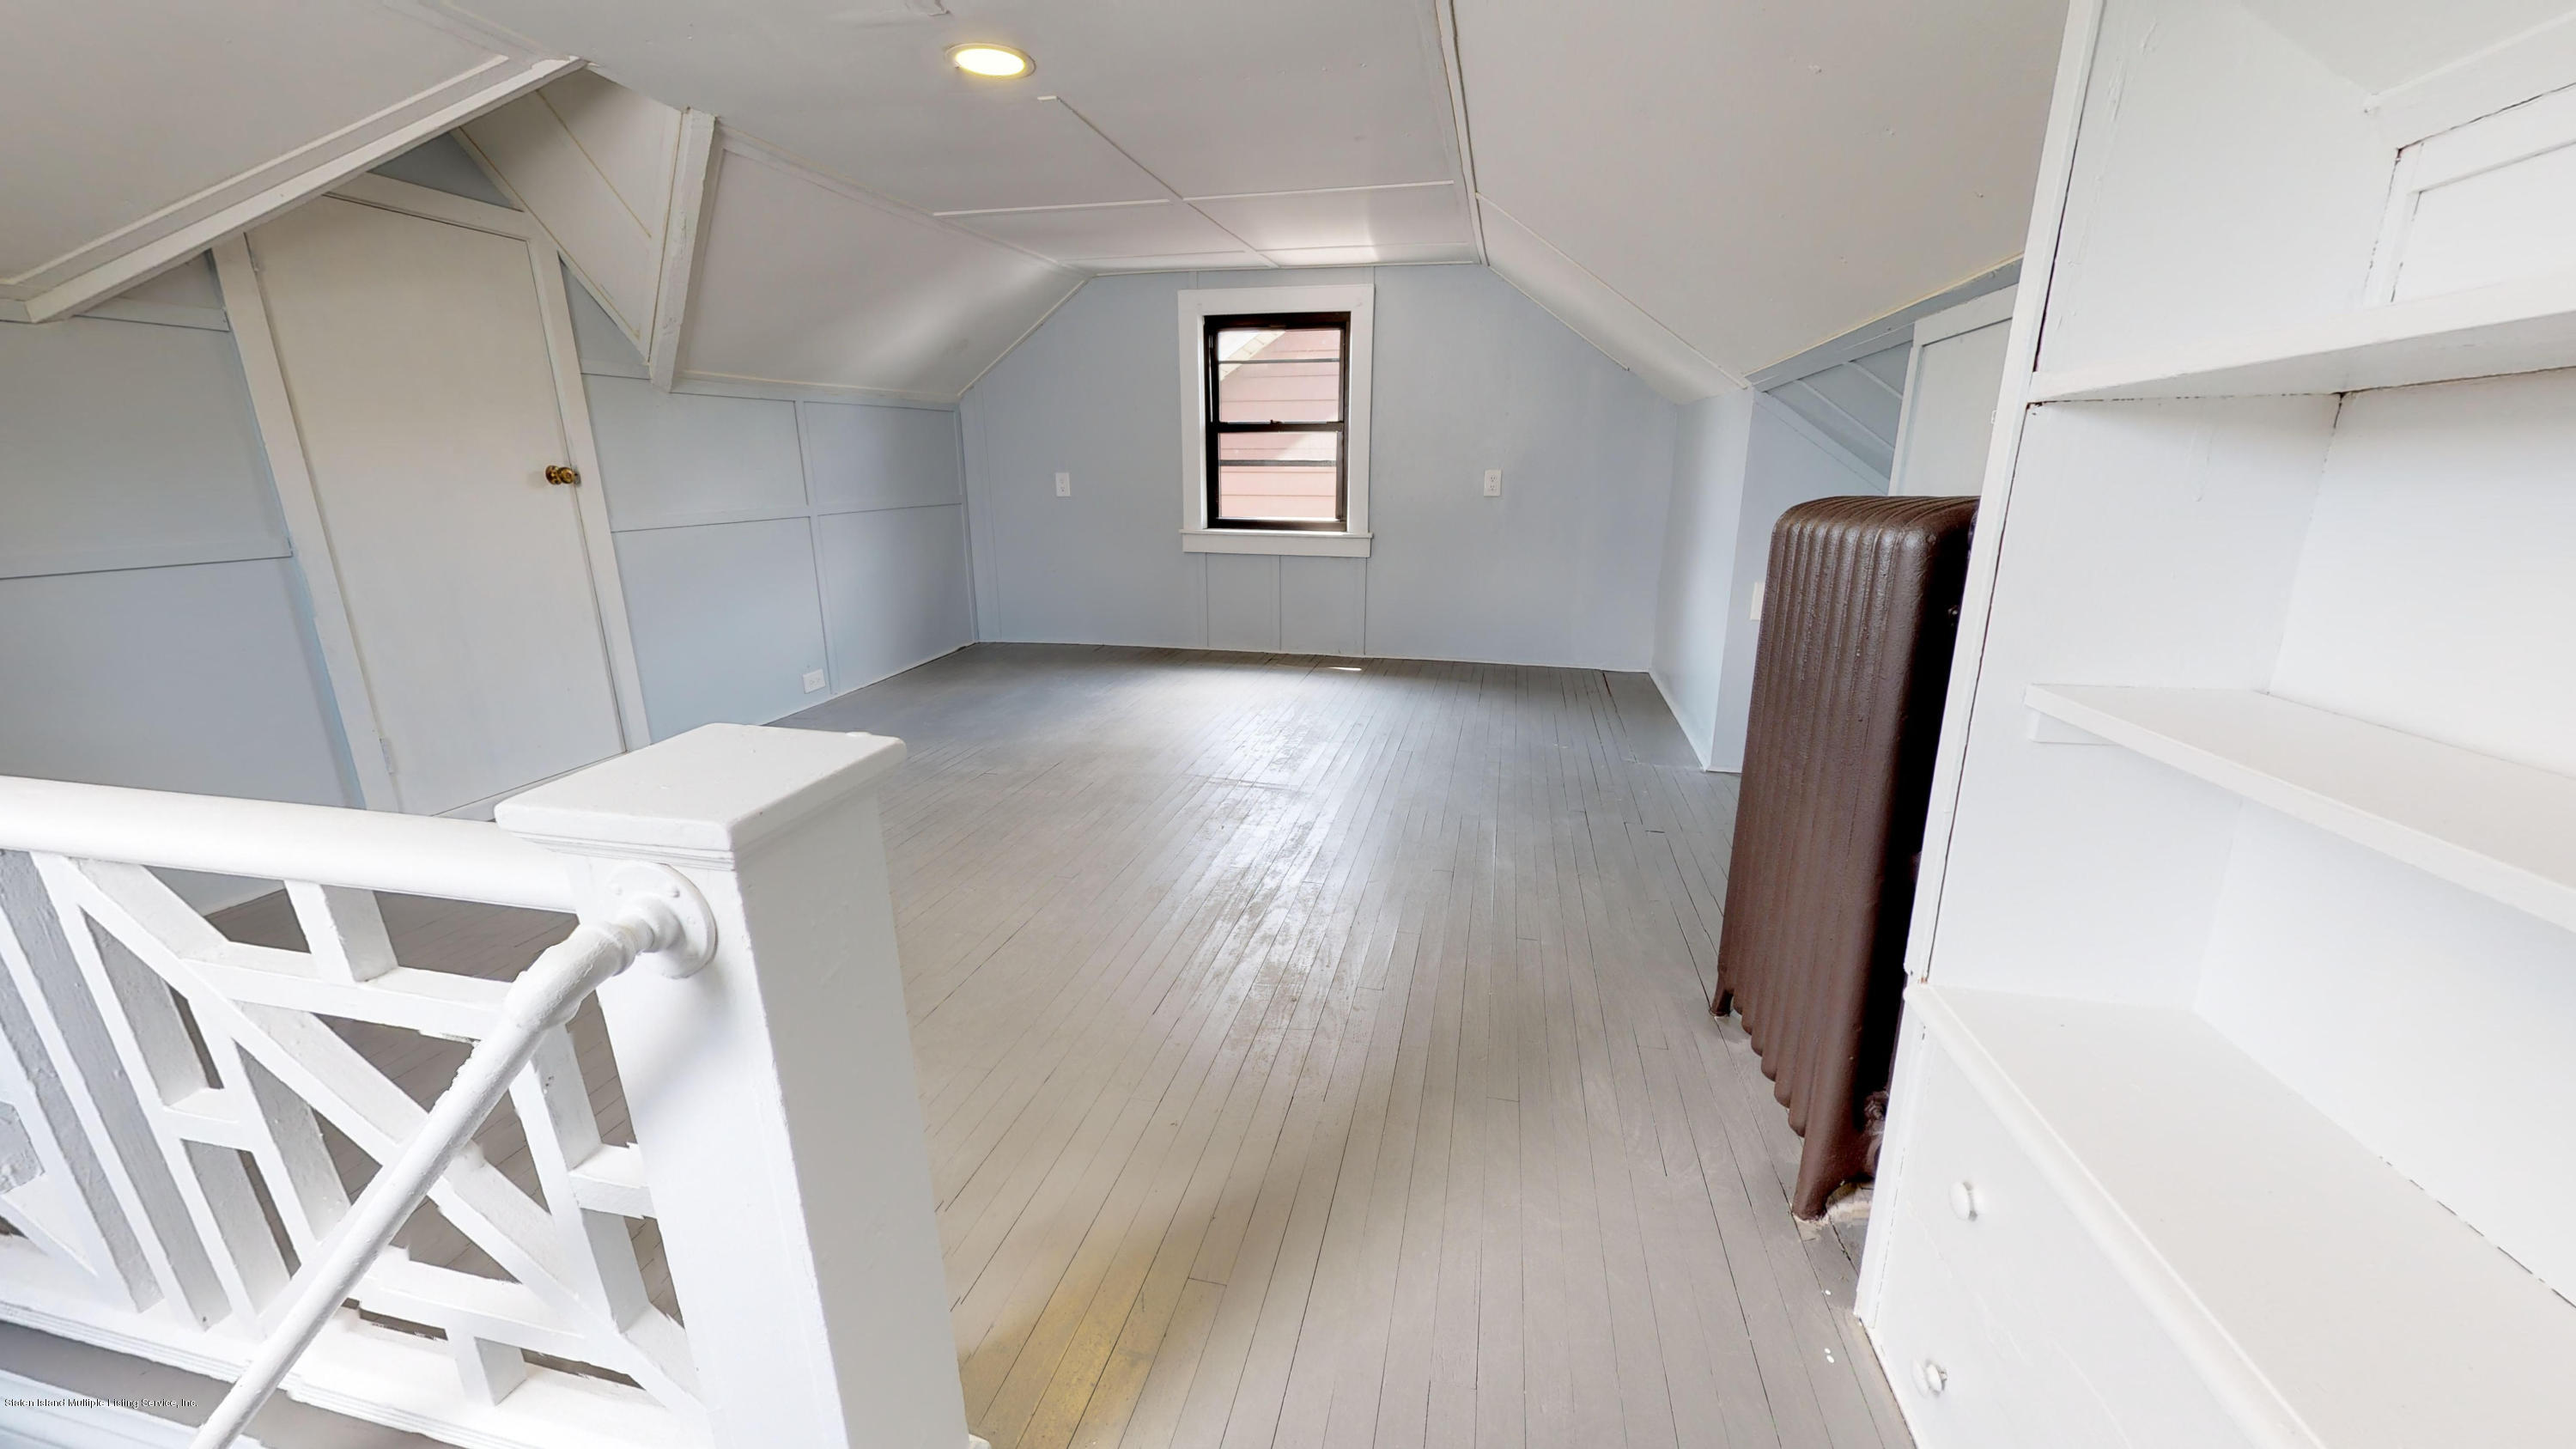 Single Family - Detached 54 Quinlan Avenue  Staten Island, NY 10314, MLS-1129378-13